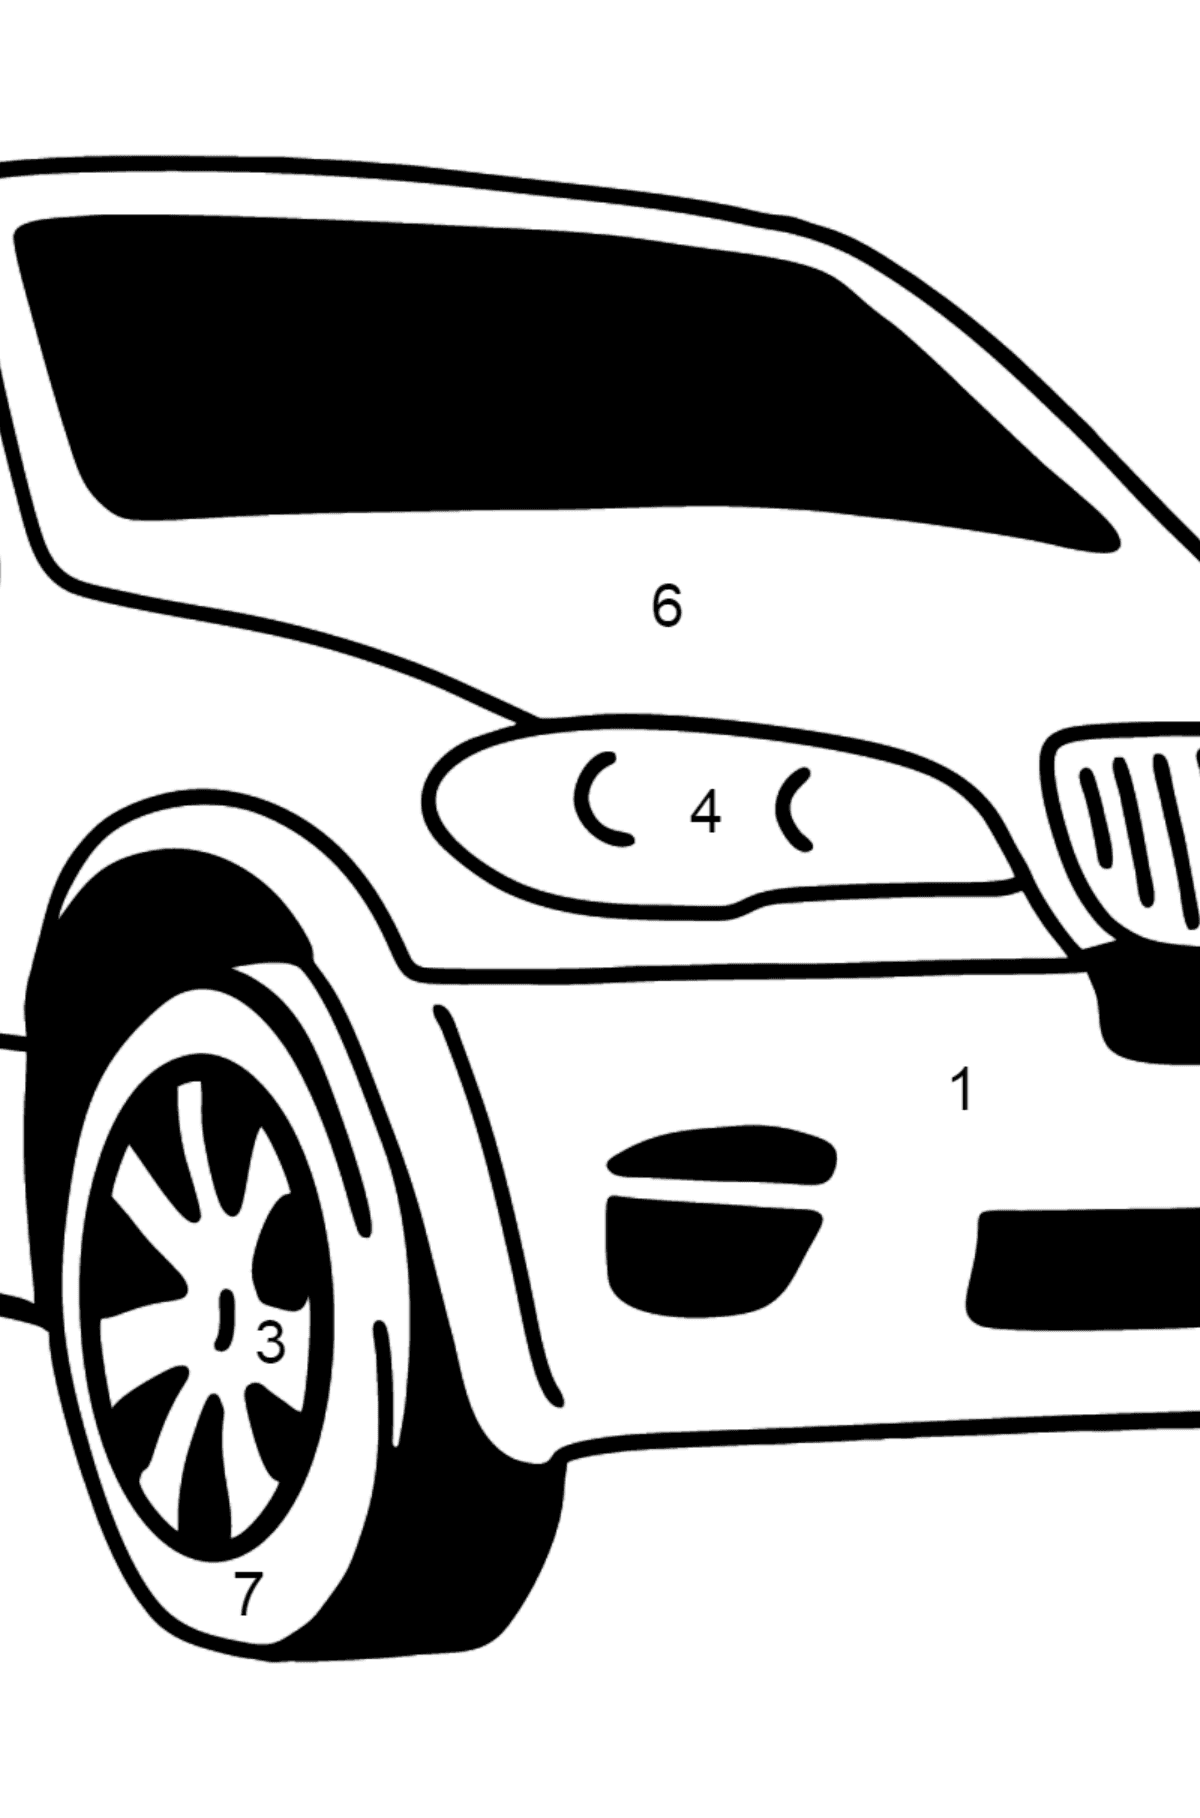 BMW X6 Crossover coloring page - Coloring by Numbers for Kids